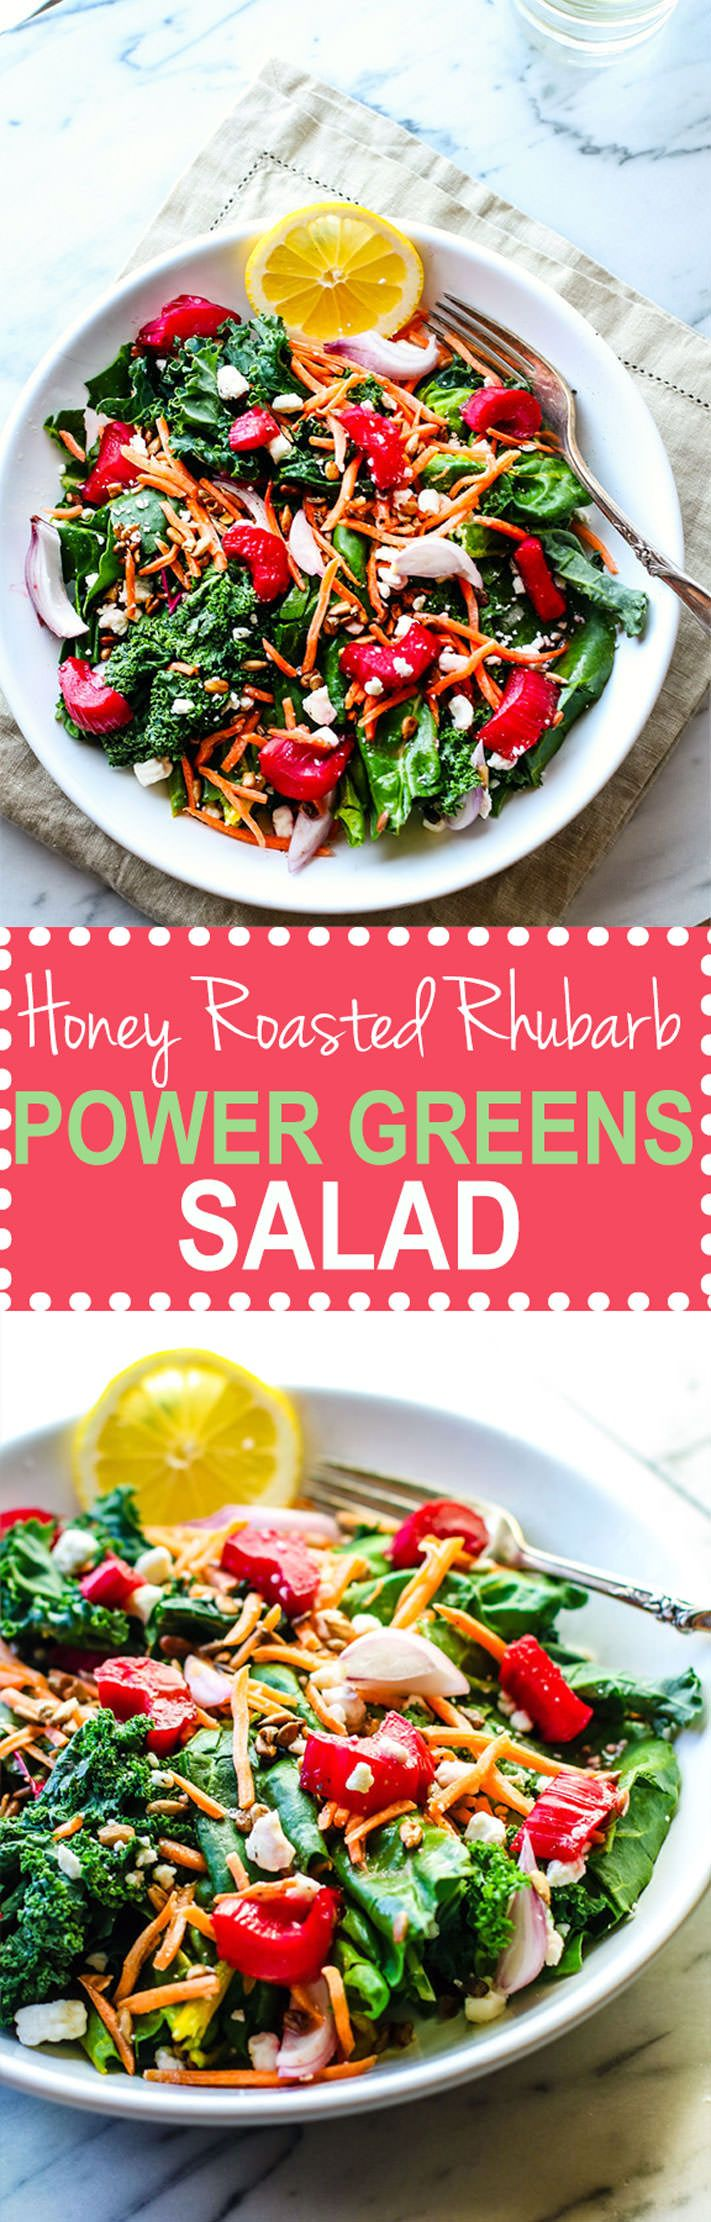 Healthy and Delicious Honey Roasted Rhubarb Power Greens Salad! A vegetarian honey roasted rhubarb salad jammed packed with nourishment and bursting with flavor. Simple to make, vegetarian, and gluten free!